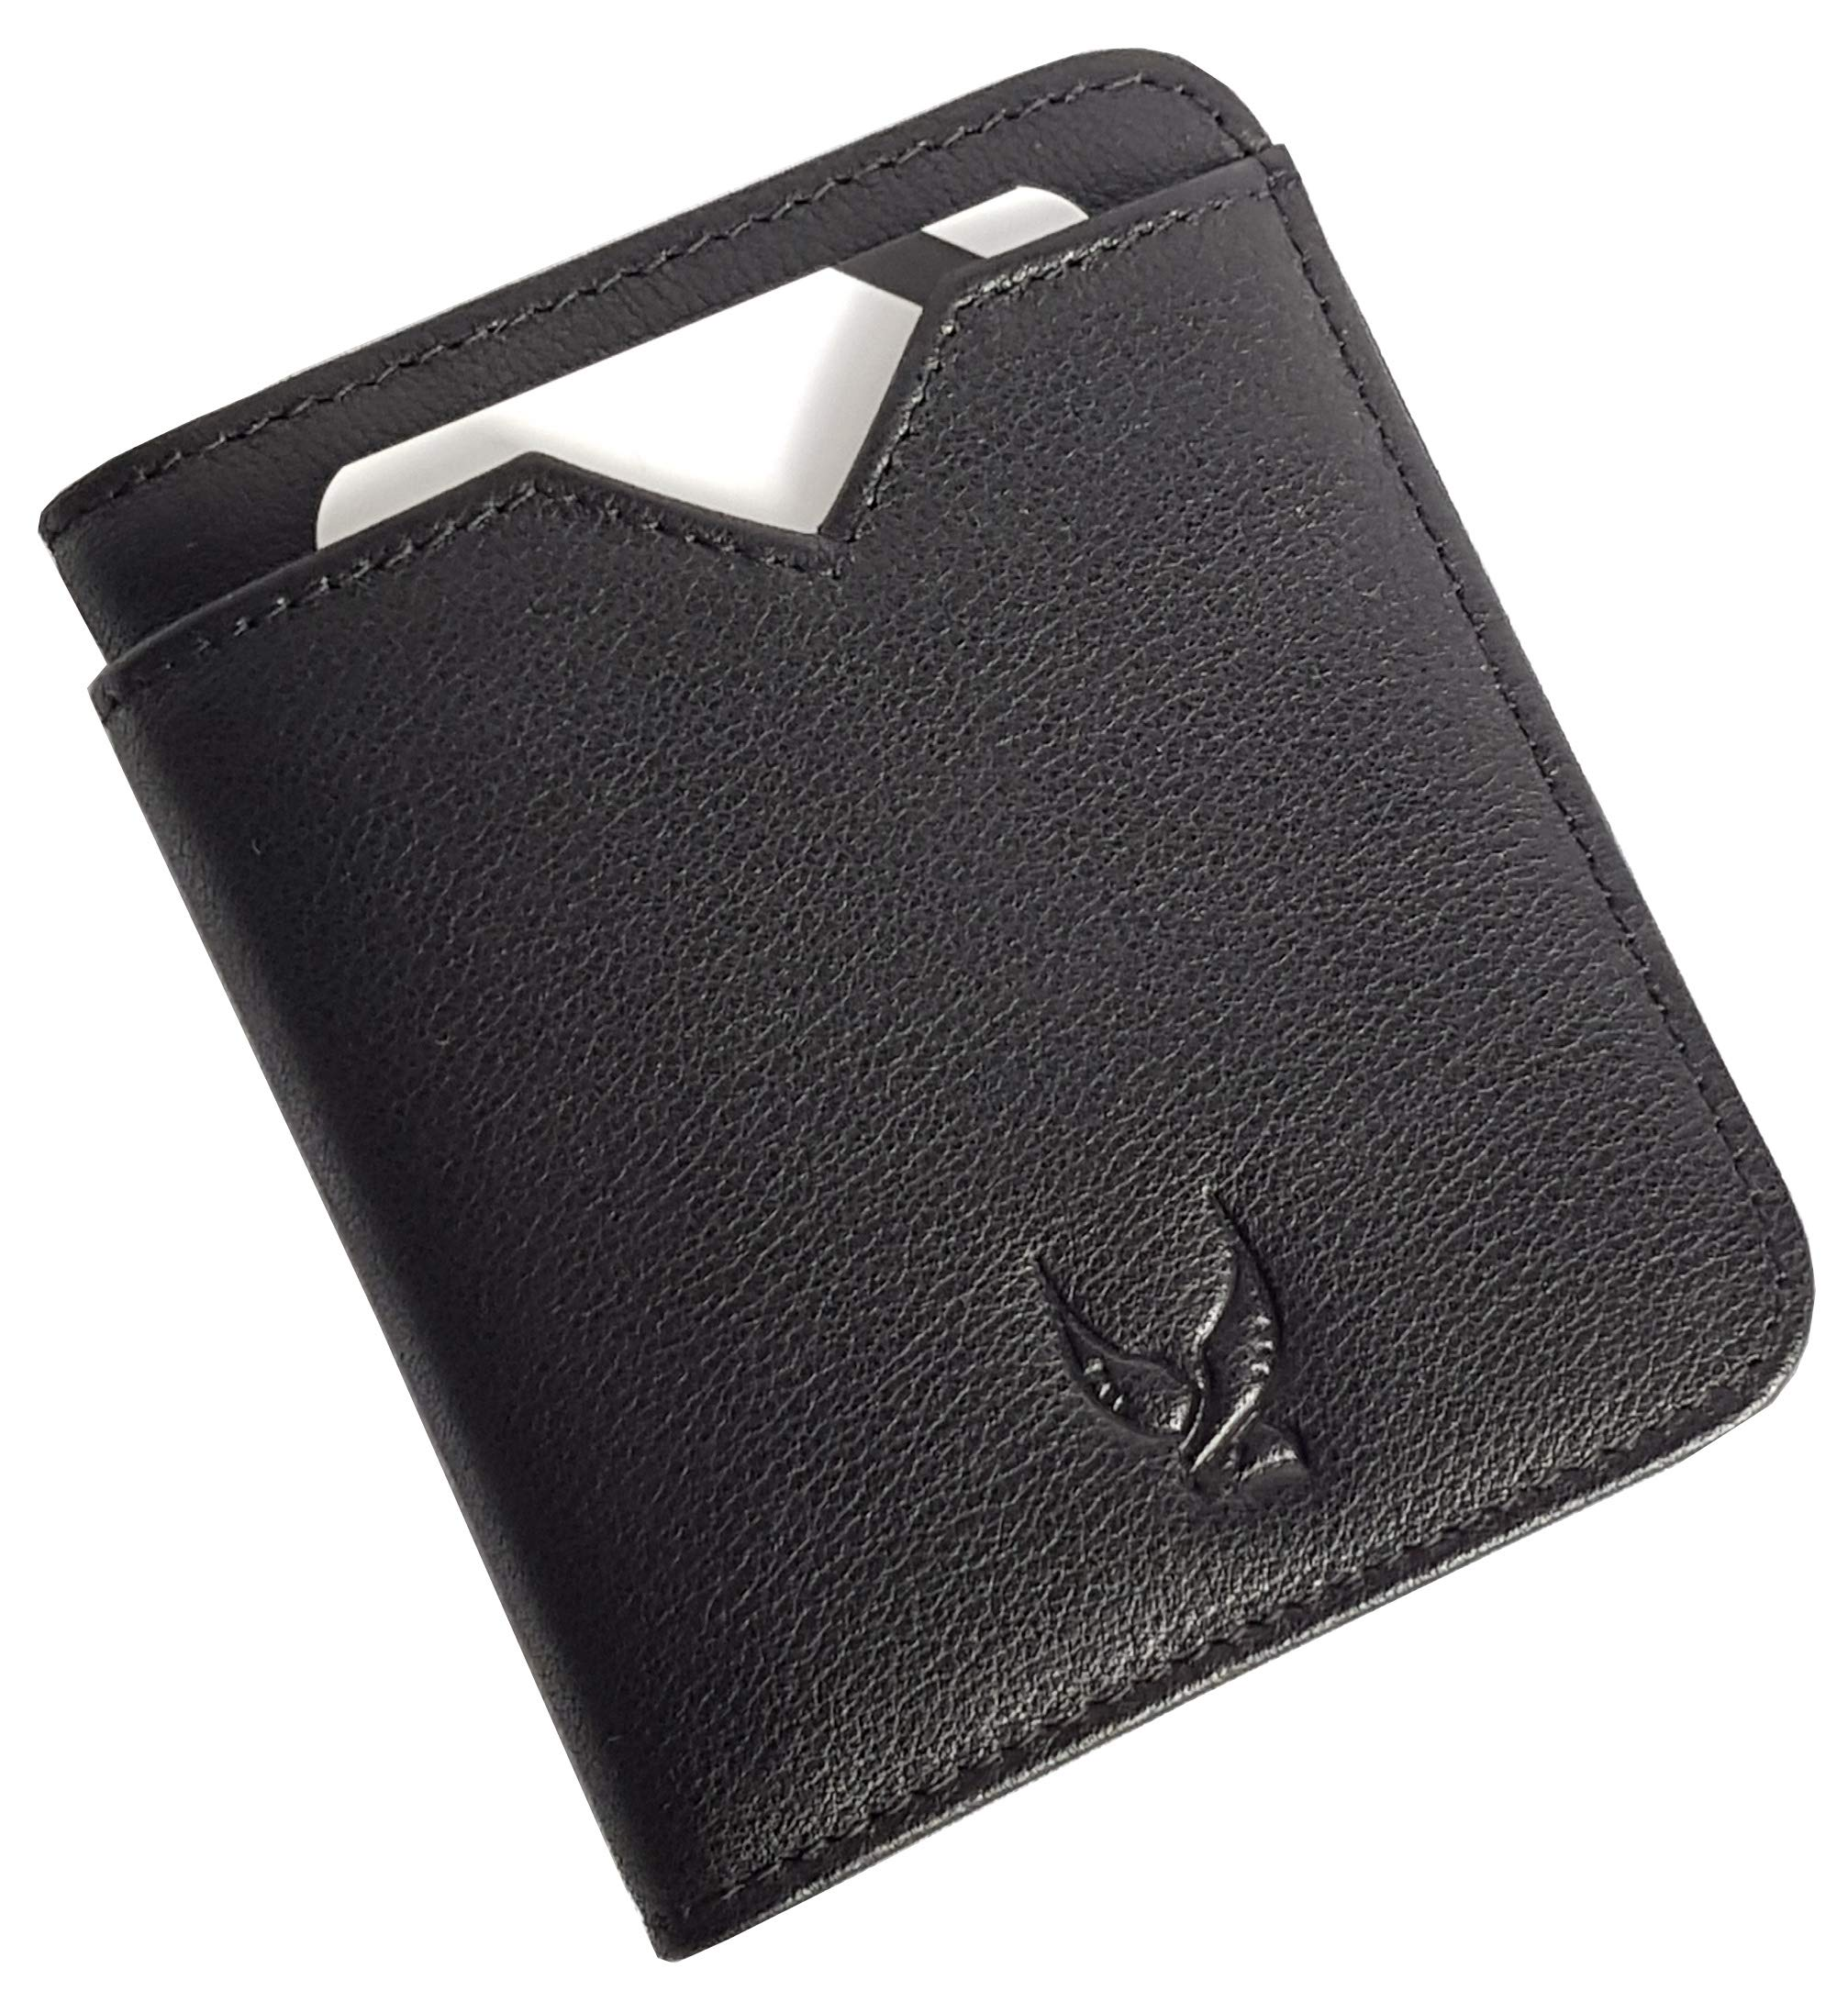 Falcon Vault - RFID Blocking Bifold Men's Wallet - Slim Genuine Italian Leather Wallet for Men – 13.56 MHz RFID Protection - Compact Design - Hold Upto 9 Cards - Prevents Identity Theft - Black